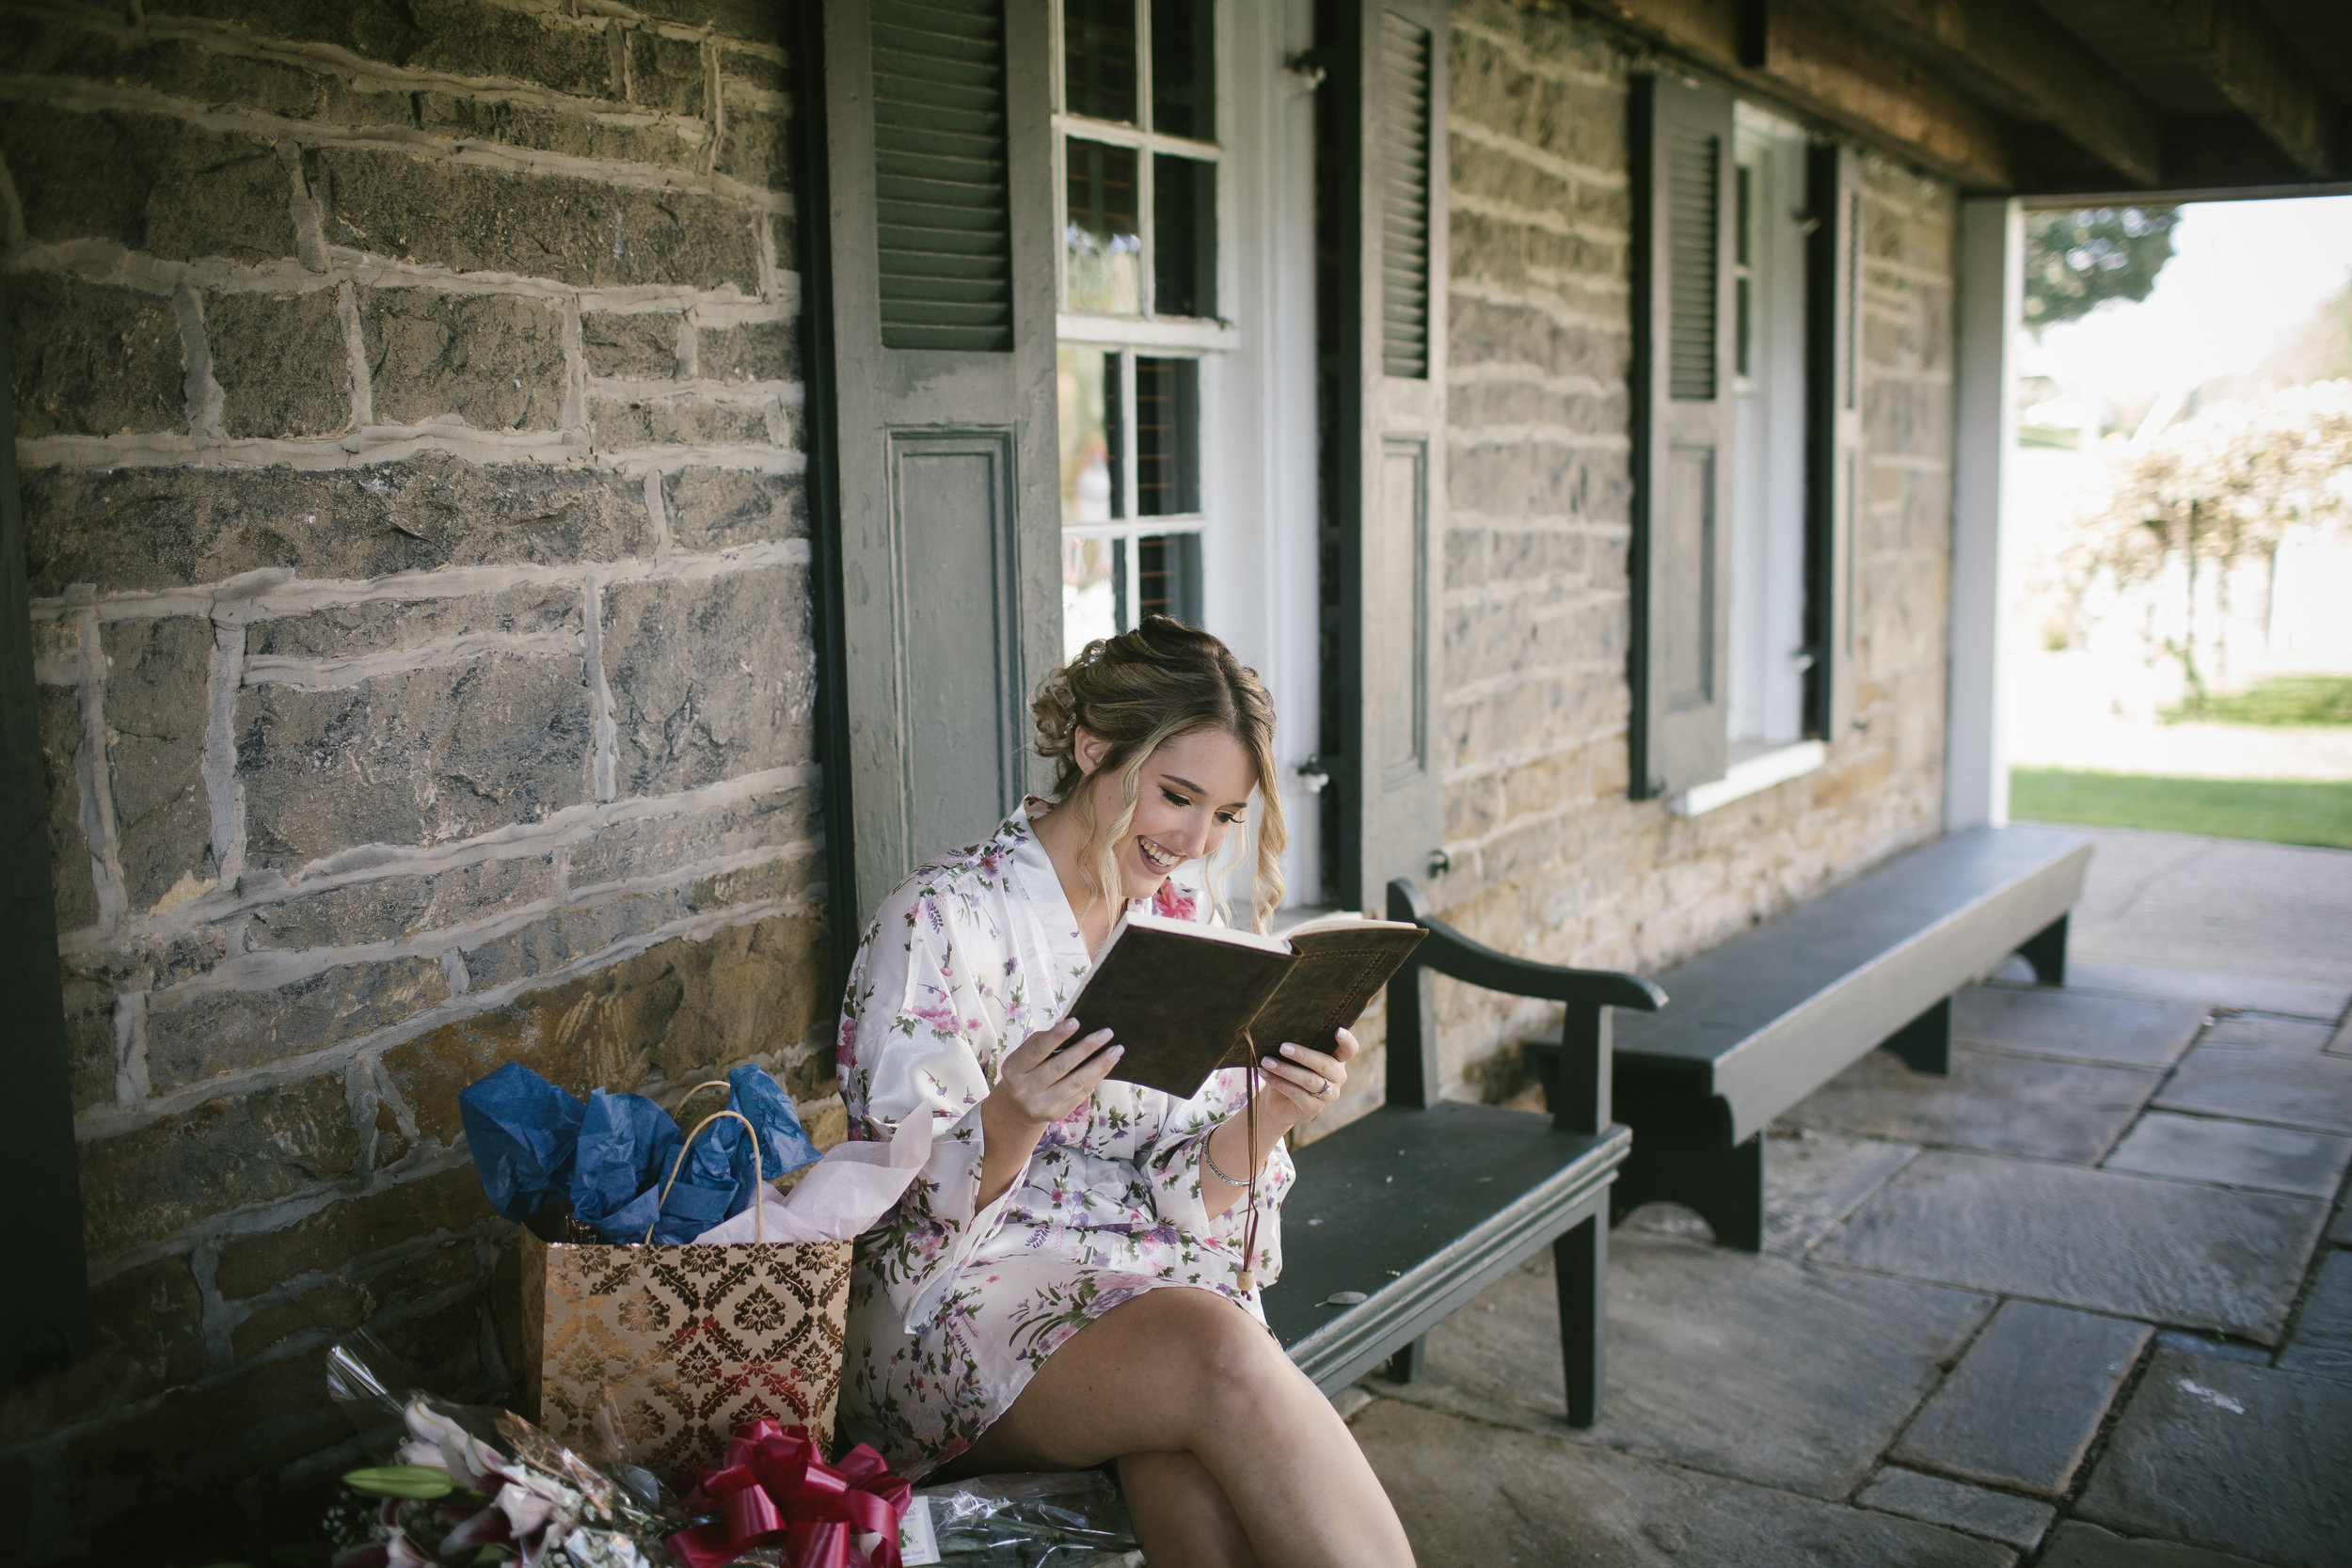 Bride reads letter from groom at rustic wedding in Pittsburgh, PA planned by Exhale Events. Find more wedding inspiration at exhale-events.com!